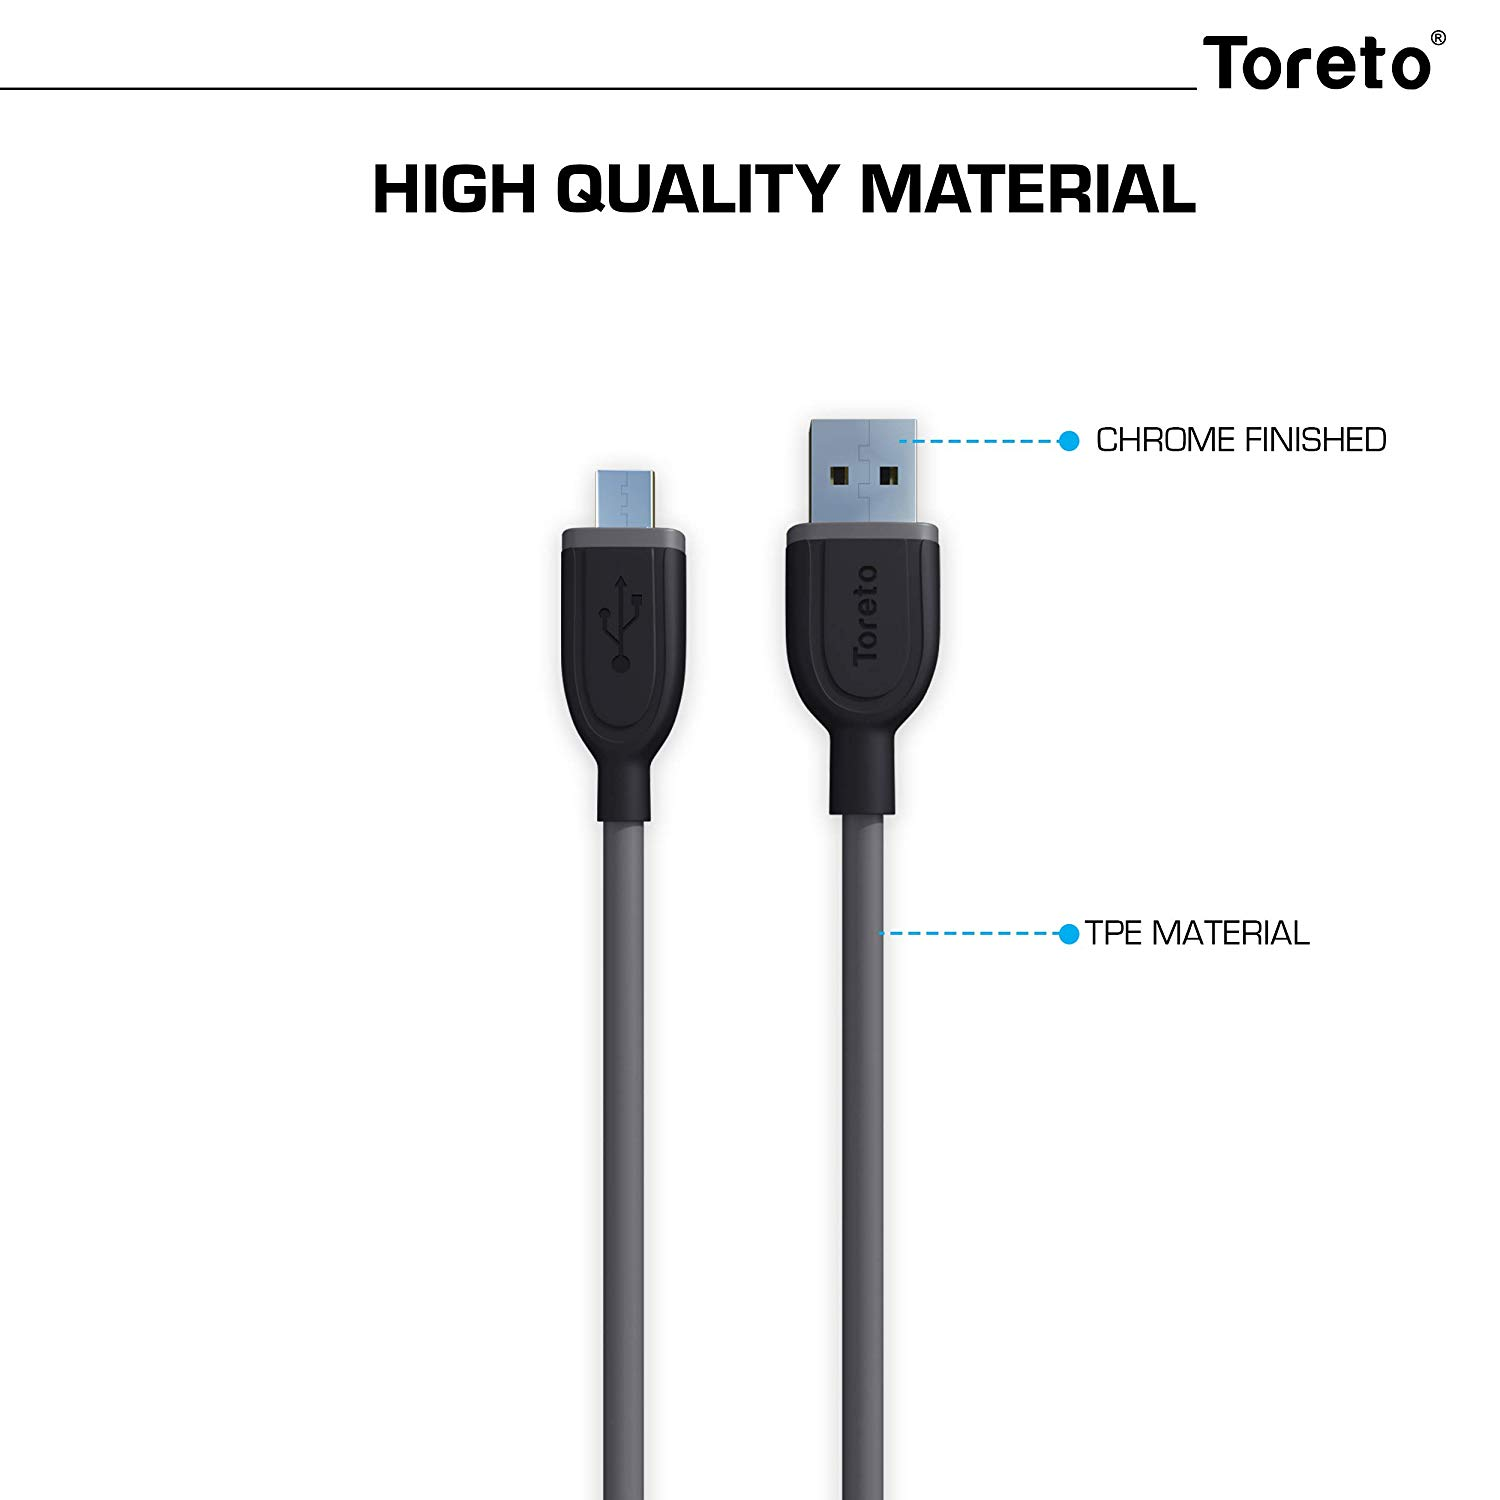 Toreto Armour-2 Micro USB Charging Cable for Android Phones 2M (TOR-839, Grey)